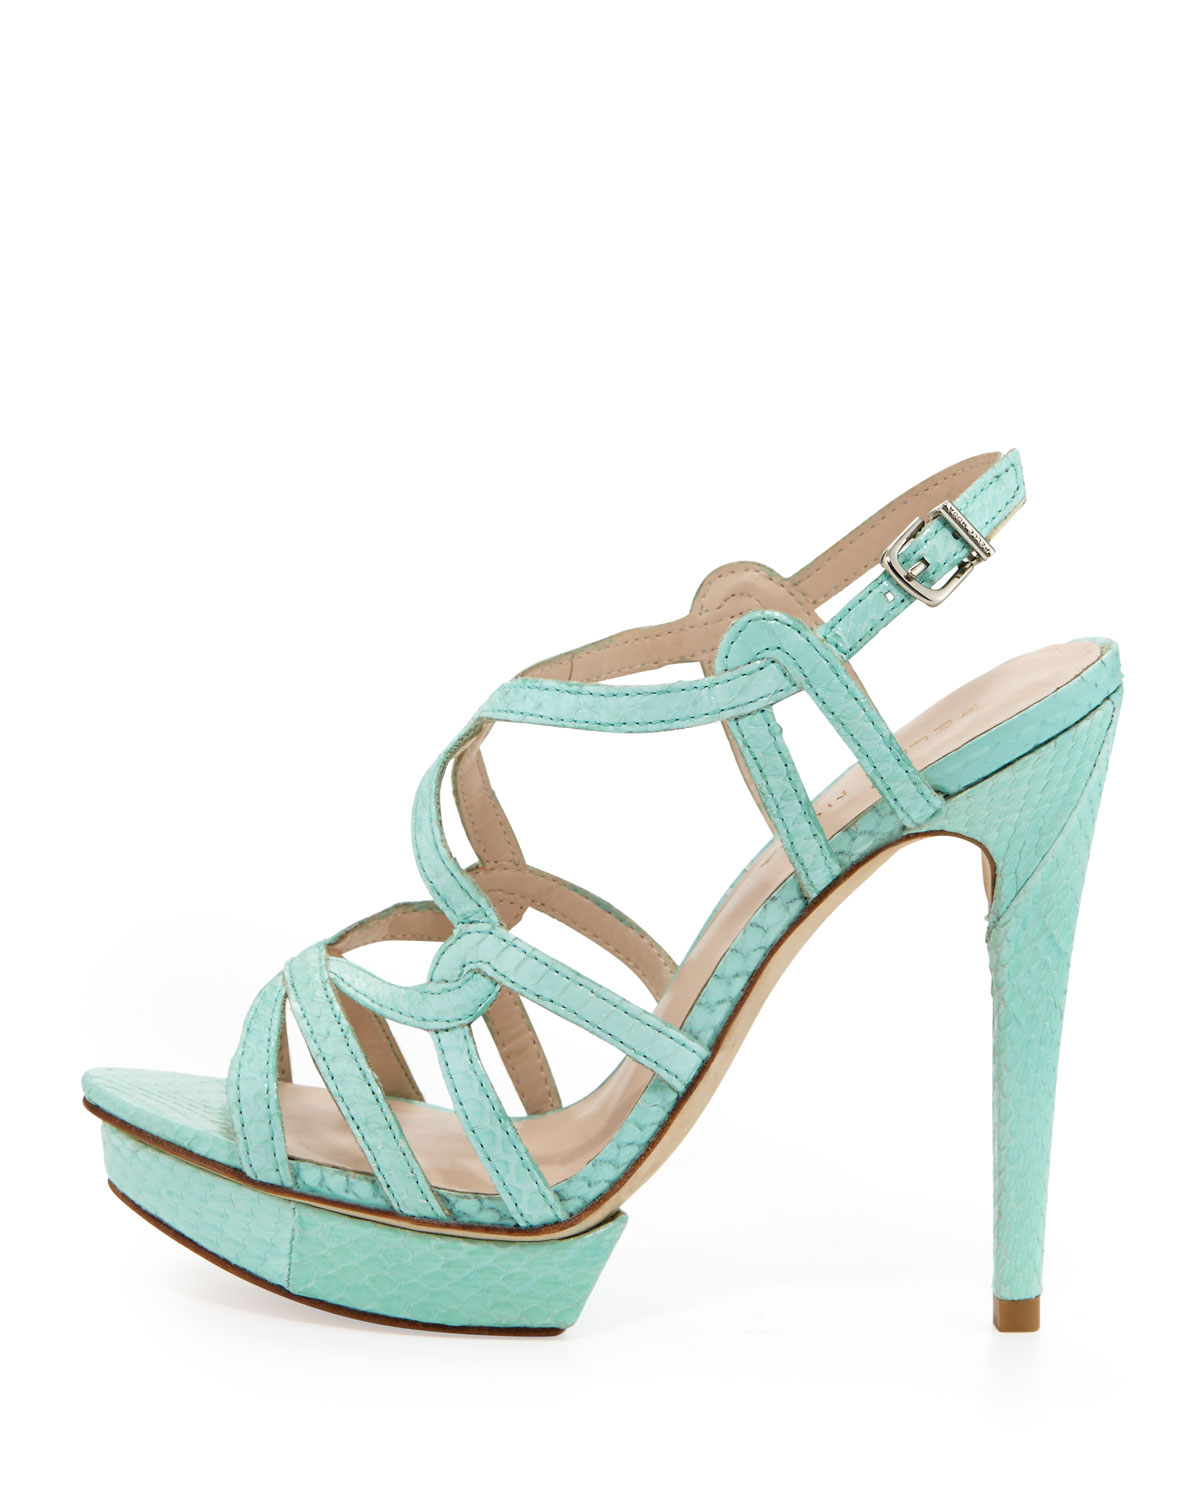 pelle moda flirty sandal Get the best deals on pelle pelle shoes and save up to 70% off at poshmark now pelle moda flirt open toe suede platform sandal $36 $198 size: 85 pelle moda.